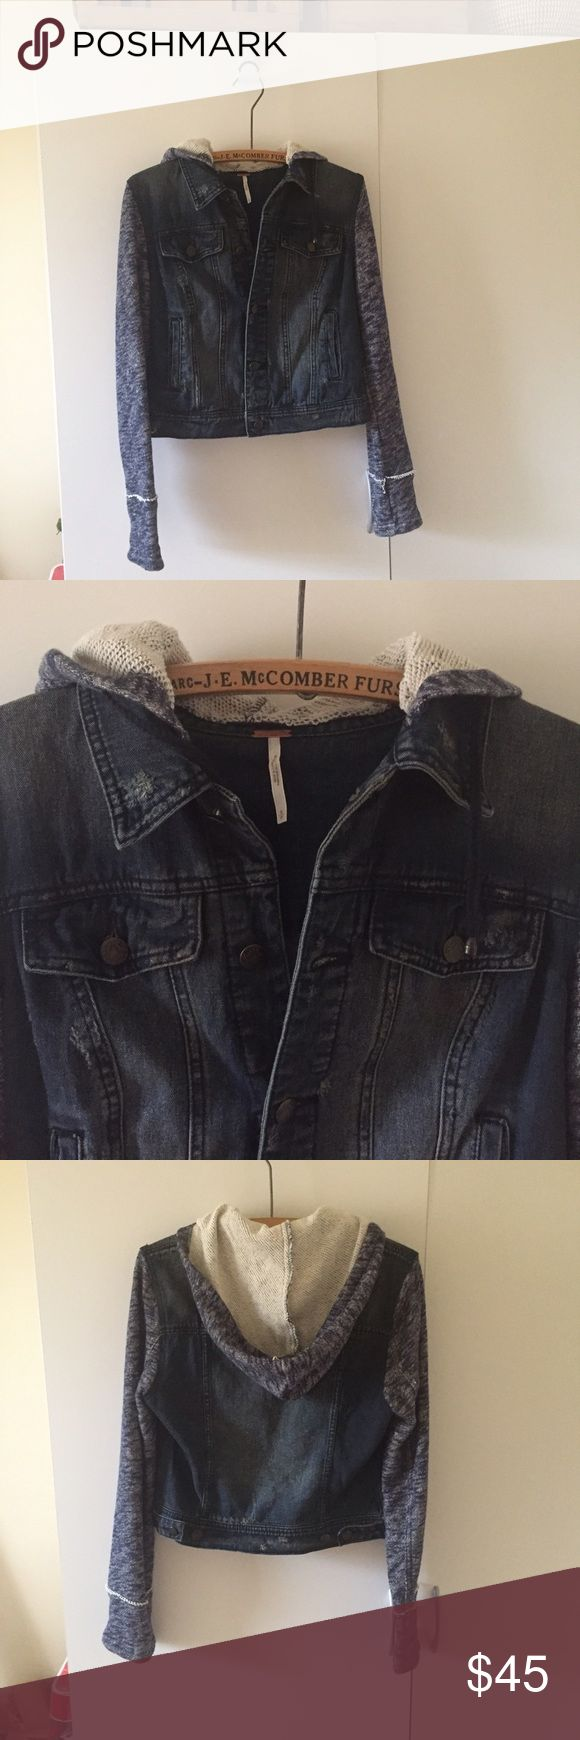 Free People Hooded Jeans Jacket Size Small New without the tags! Free People Jackets & Coats Jean Jackets